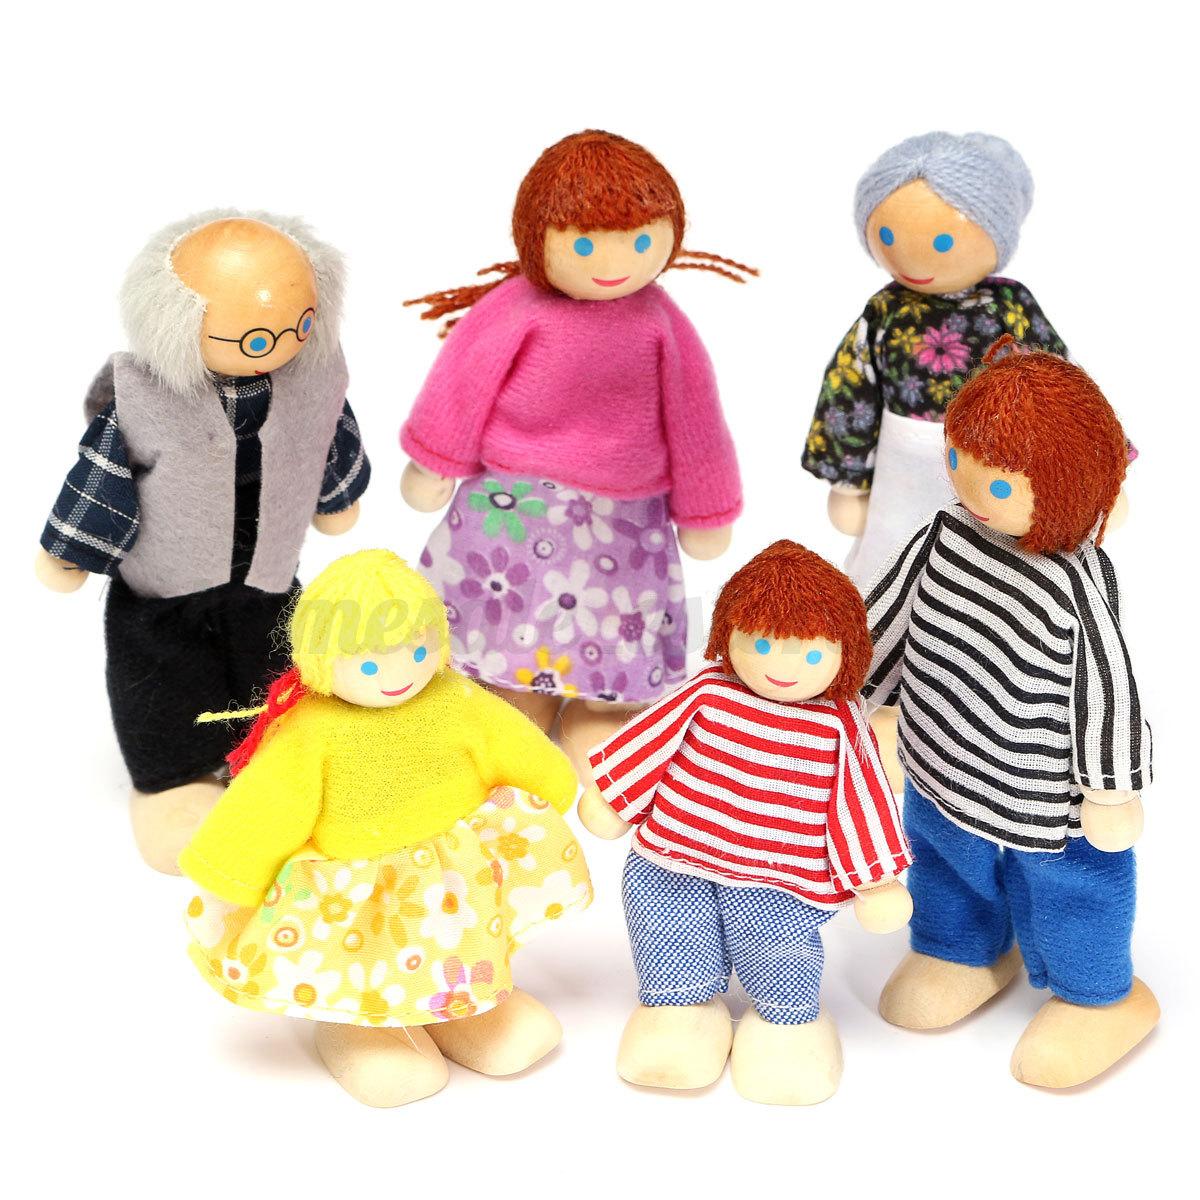 Family 4 Dolls Suits 1 Mom//1Dad//2 Girl for Girls Play House Toy HK